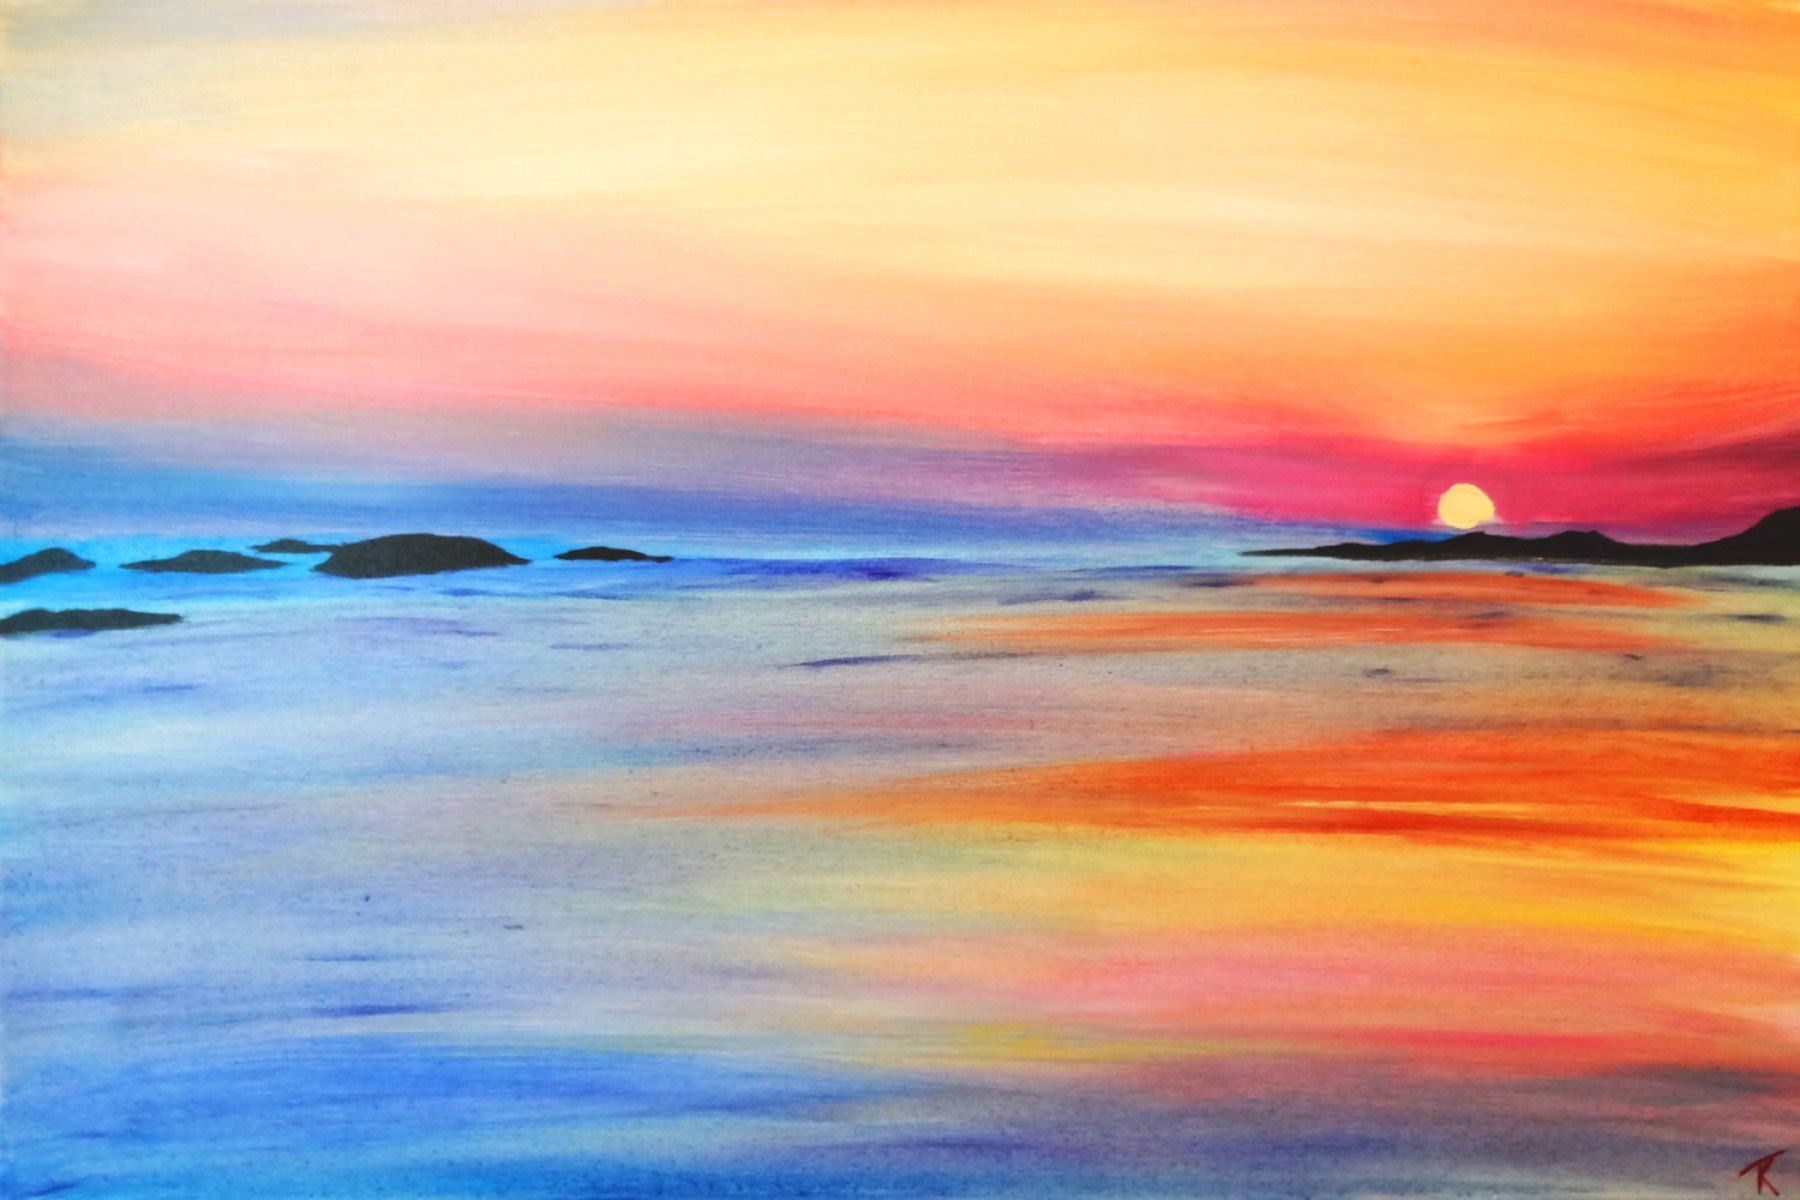 Beach Sunset Painting | Foooooooodddd | Pinterest | Beach ...